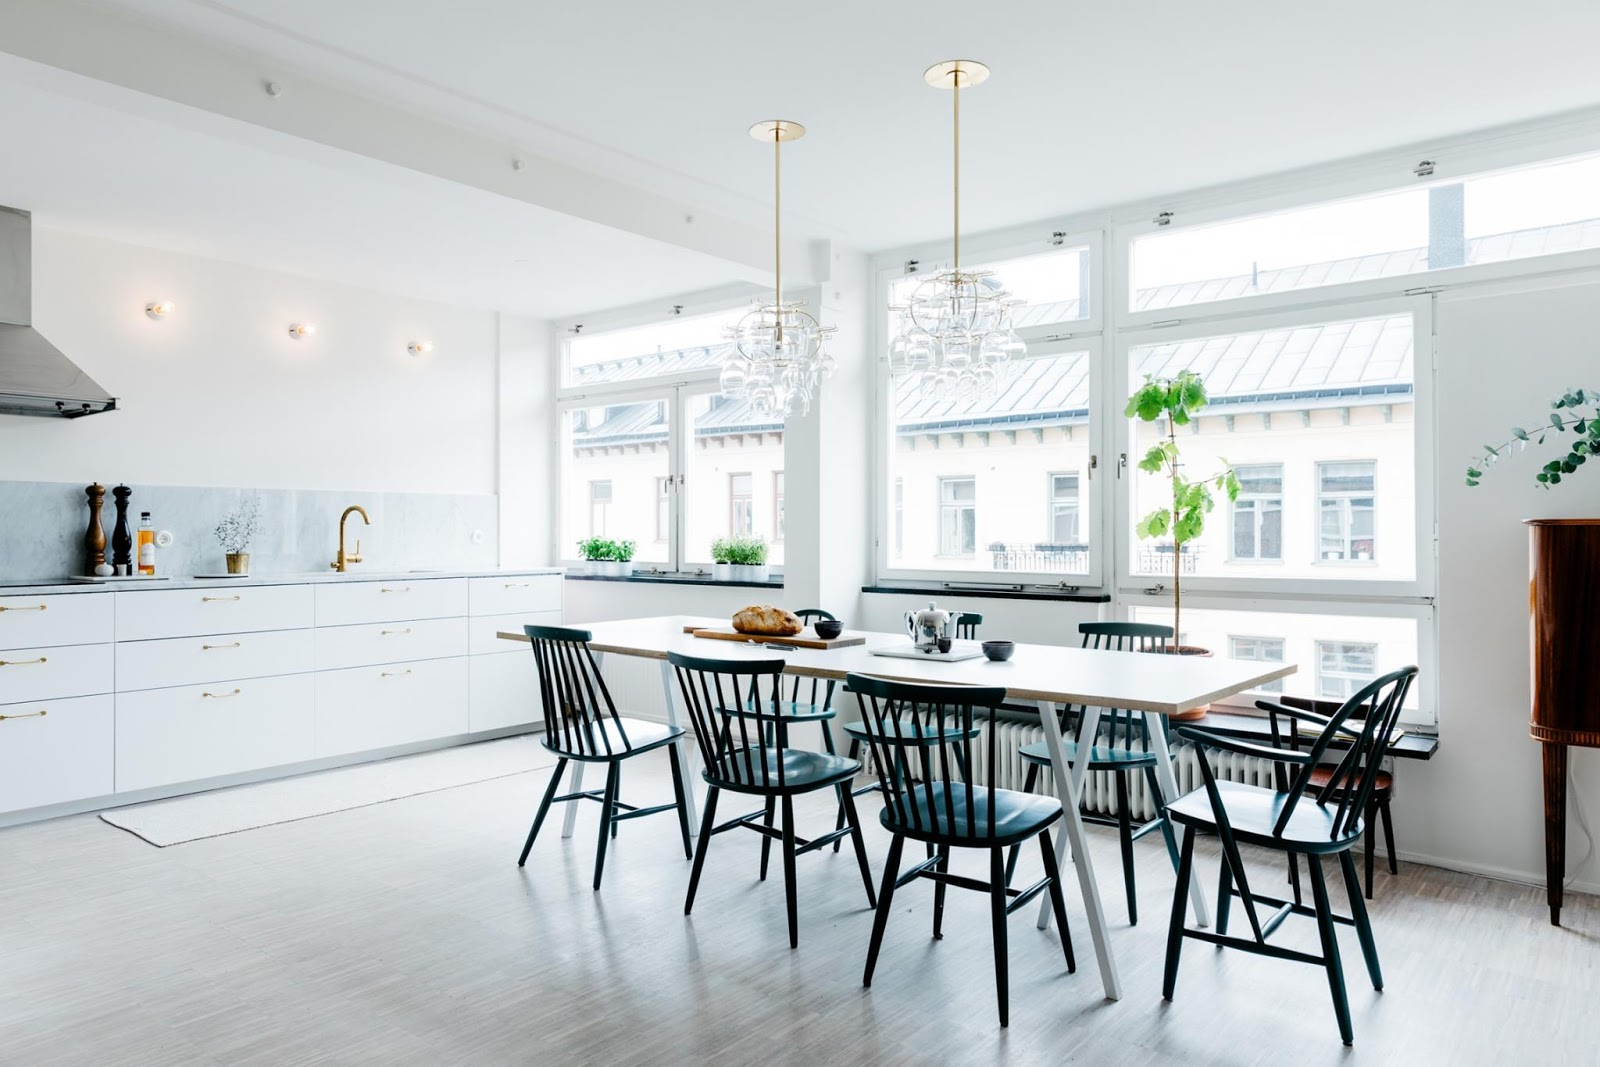 large kitchen area with gold accents and marble tabletop